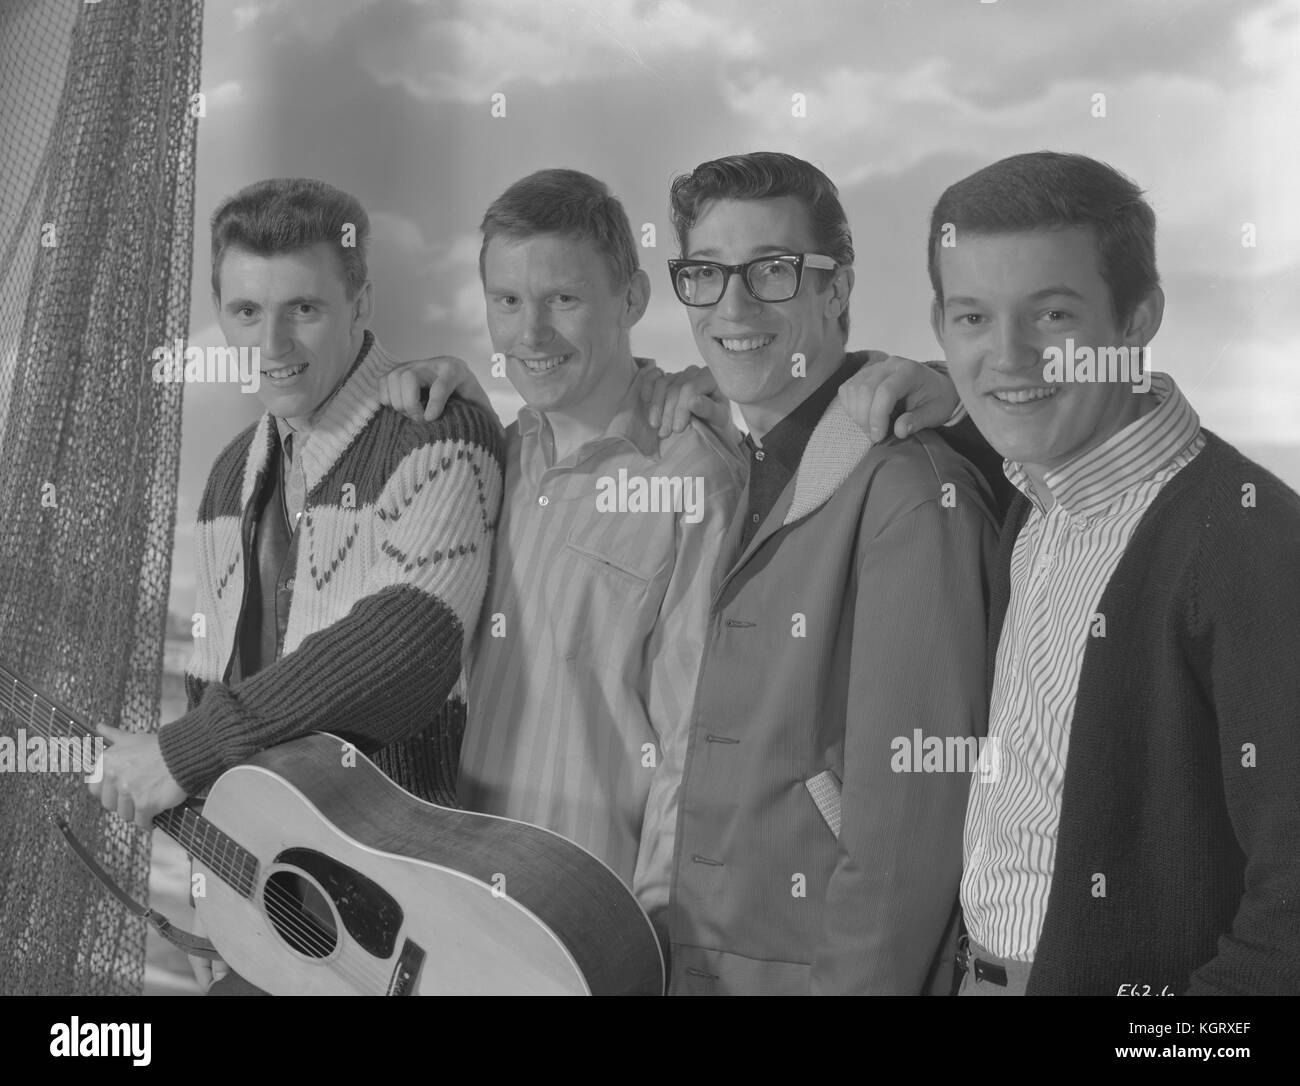 Bruce Welch: Bruce Welch Stock Photos & Bruce Welch Stock Images